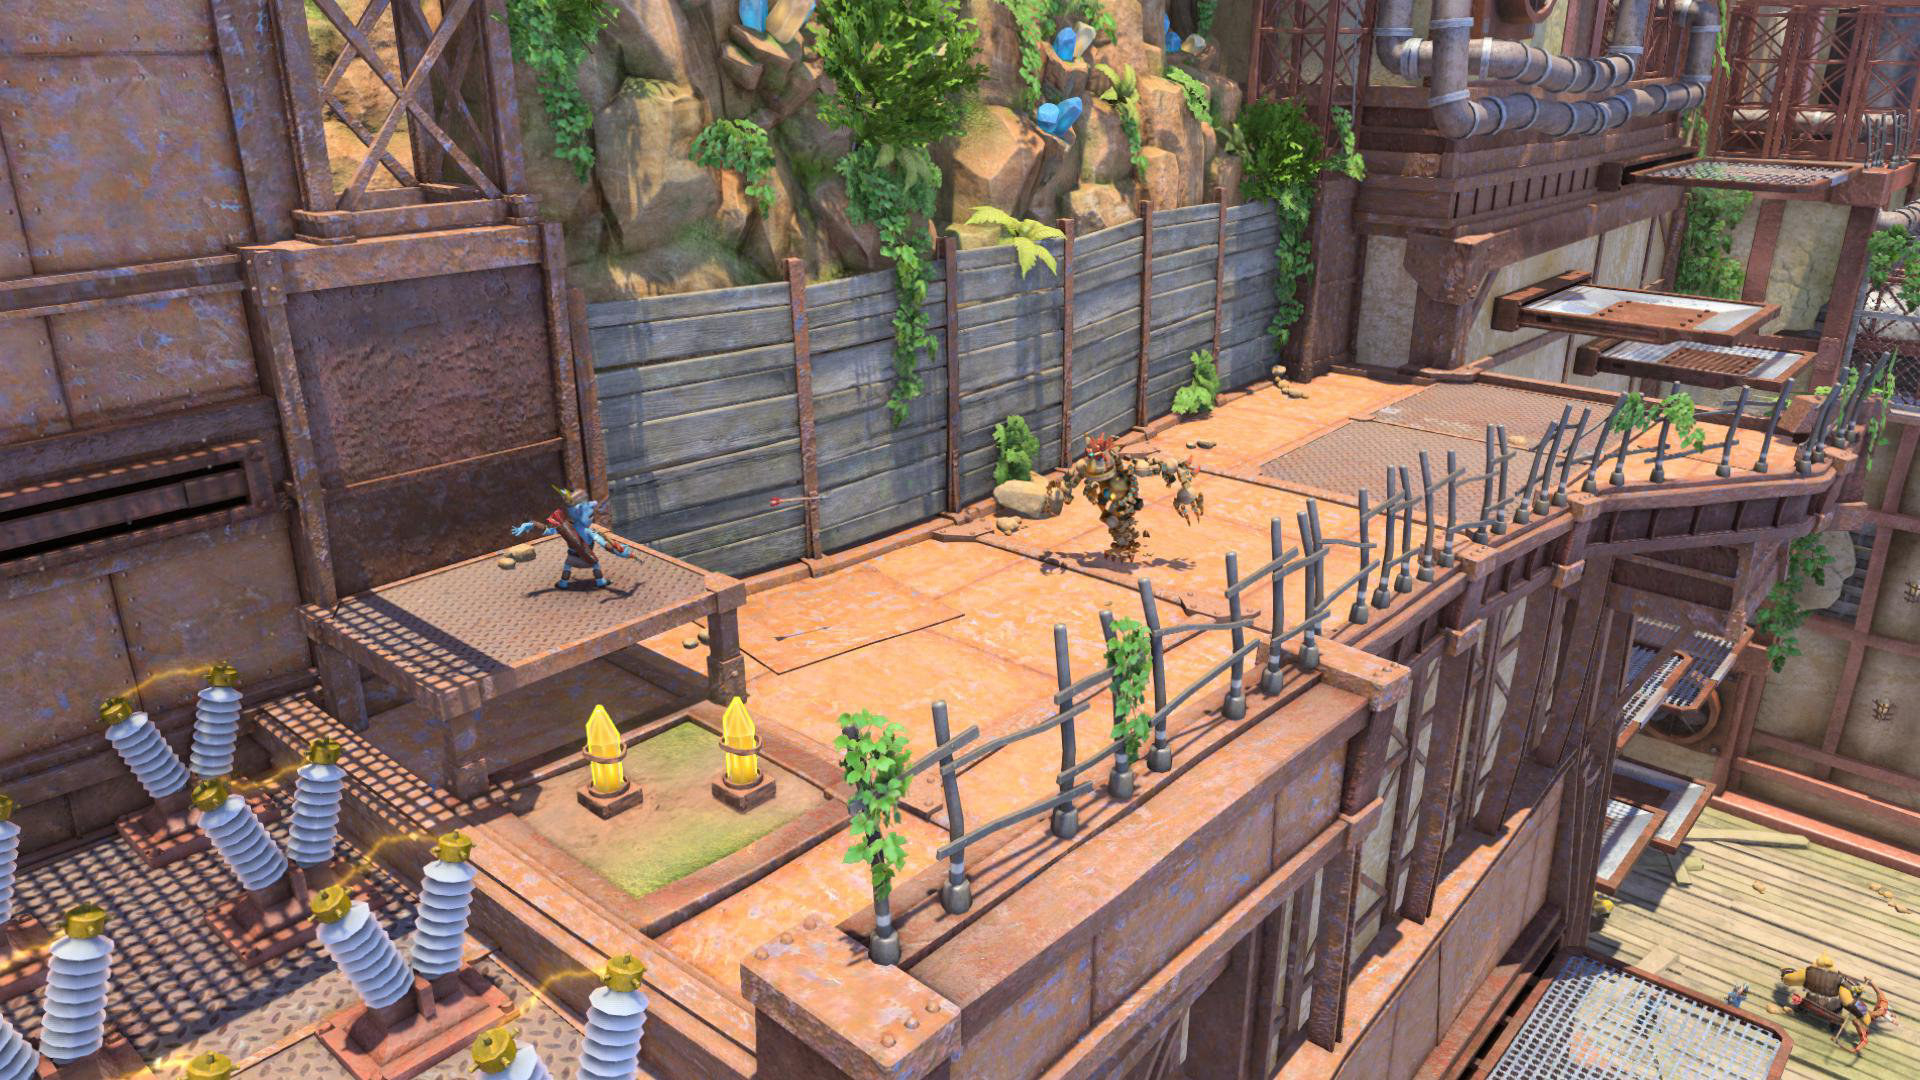 A screenshot from the video game Knack that looks cartoonish and outdated